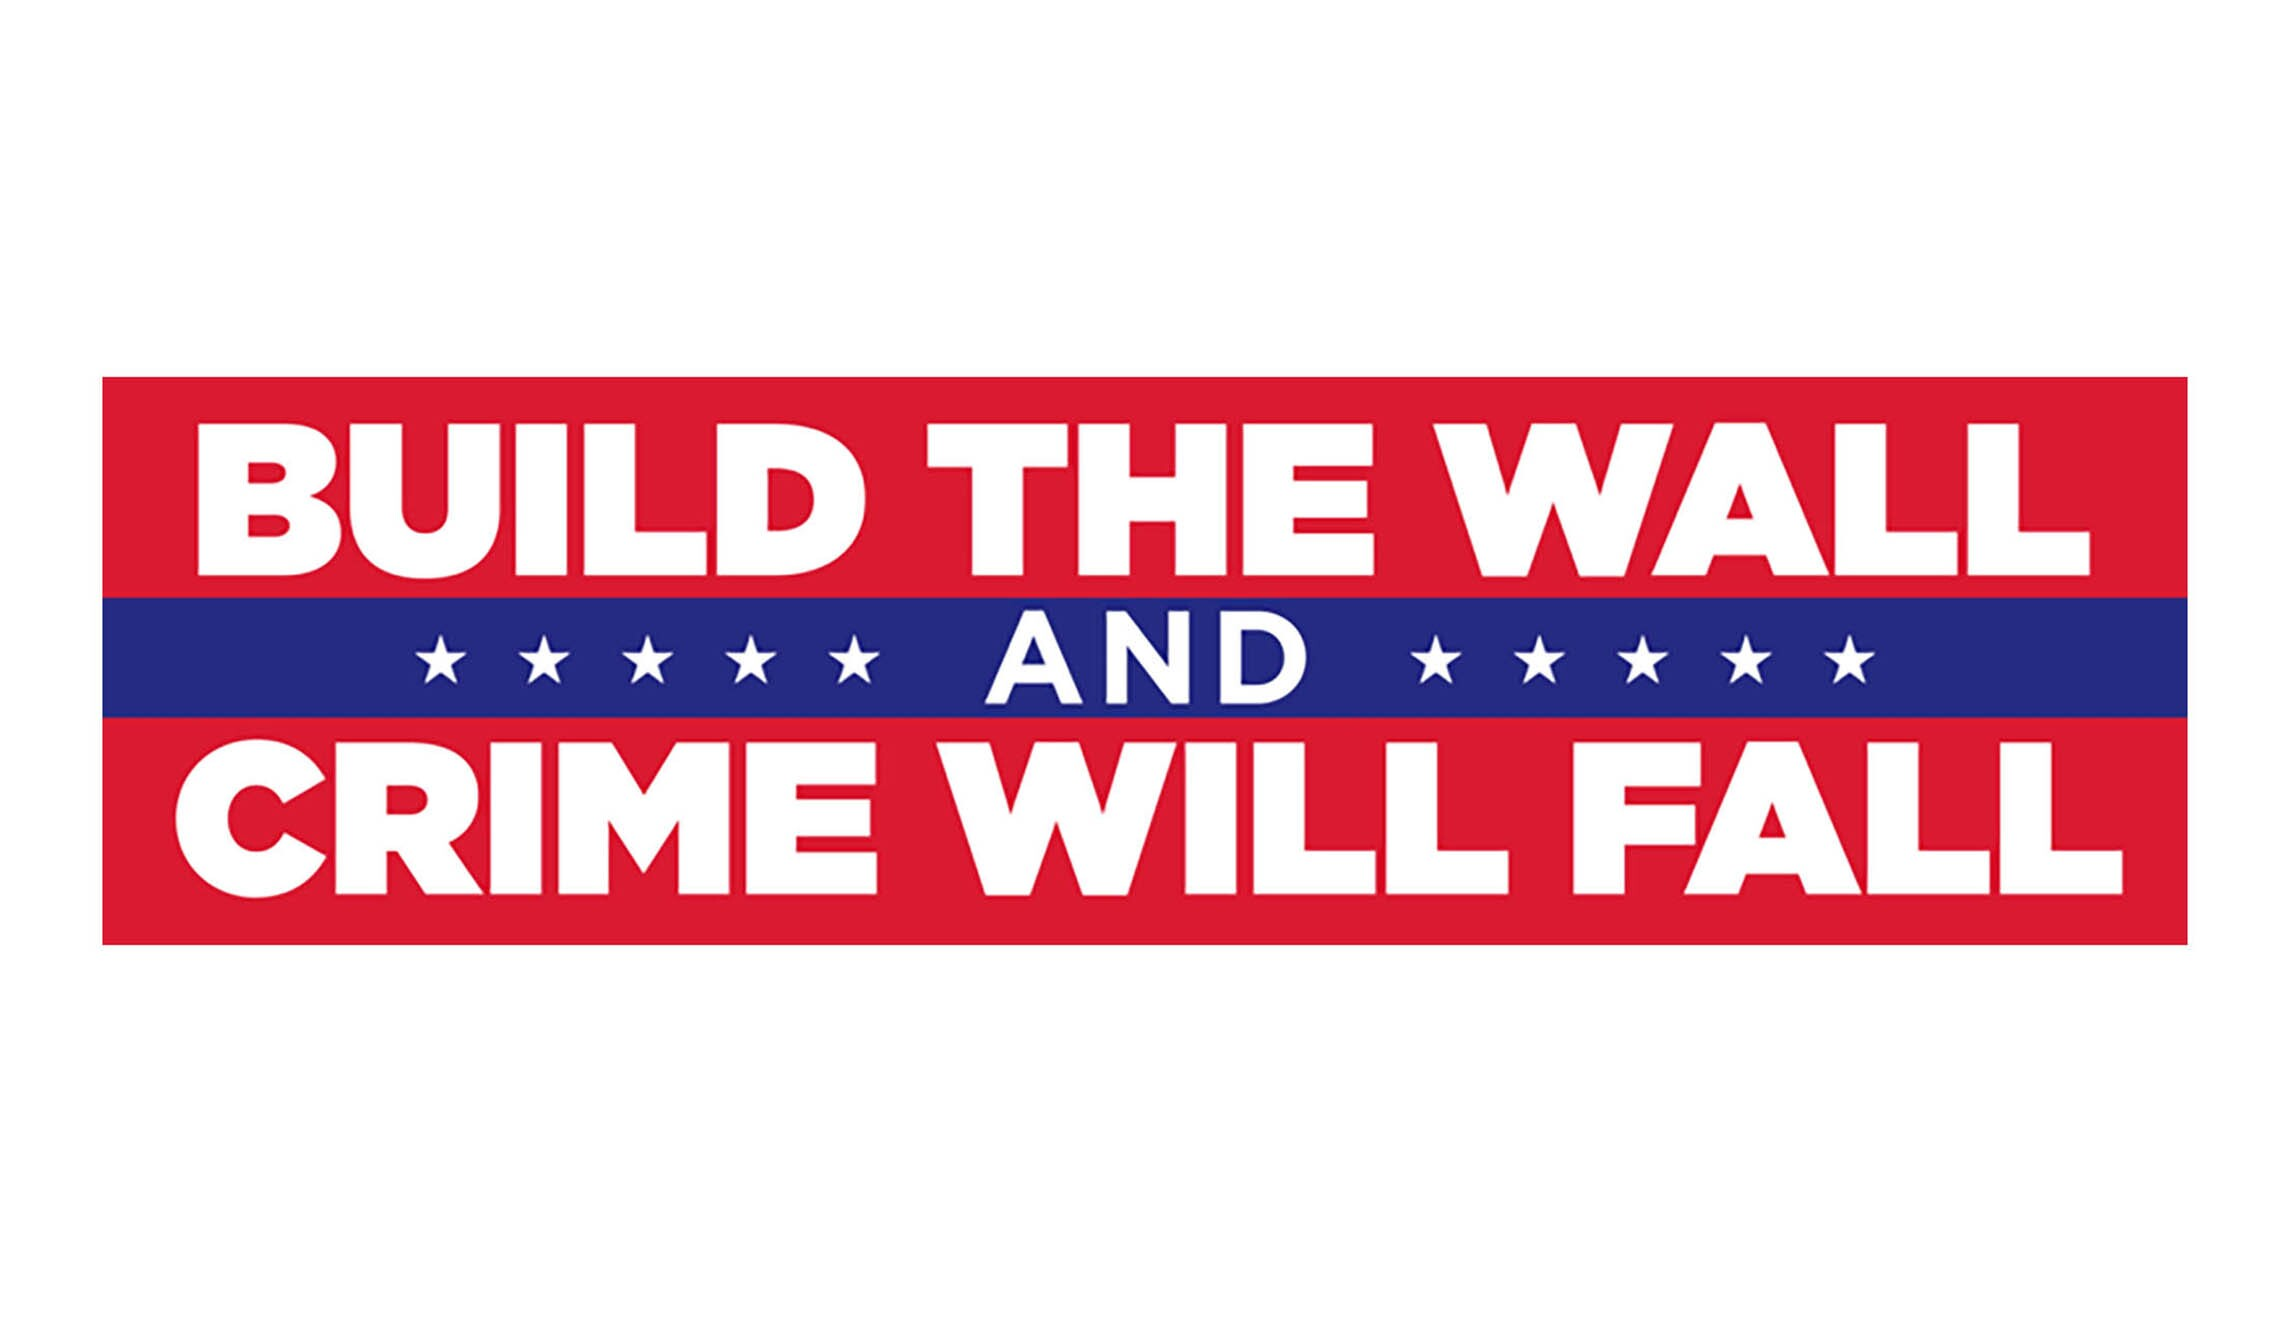 Trump 2020 pitches bumper sticker build the wall and crime will fall